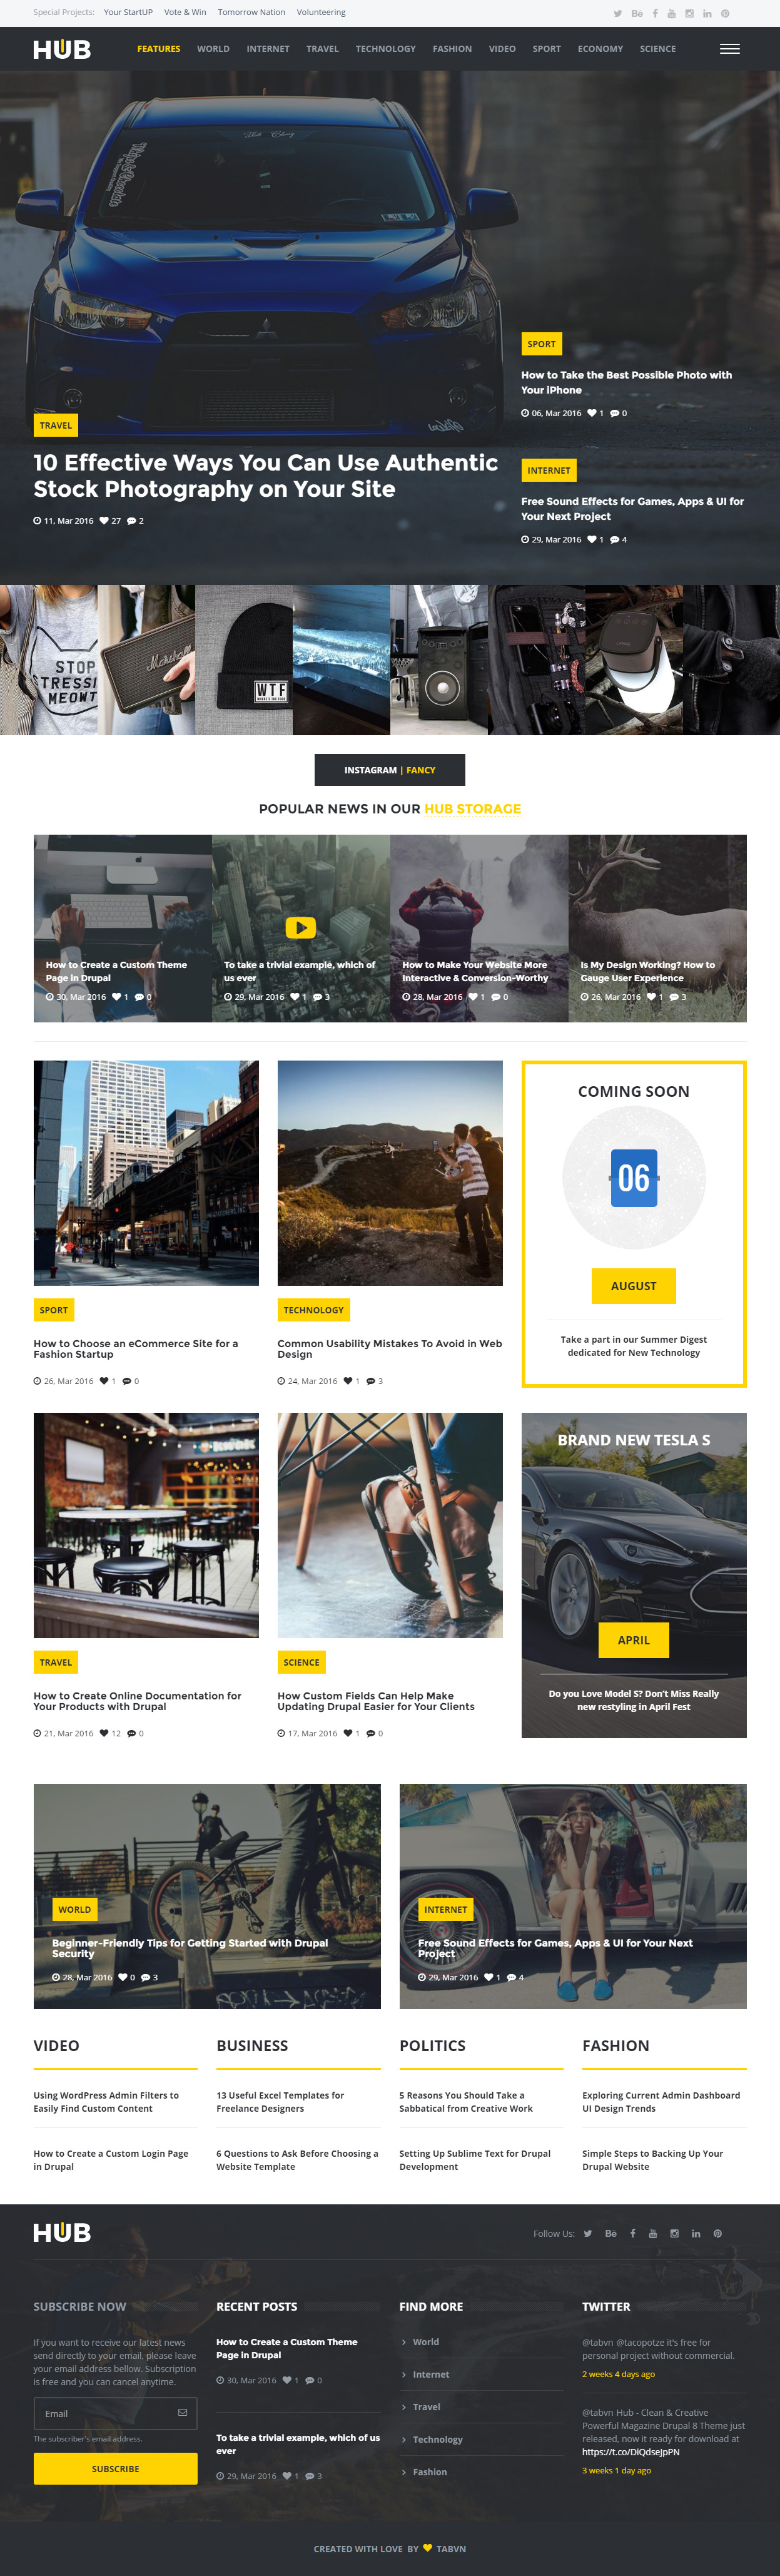 40 best drupal bootstrap themes in 2017 2018 responsive miracle hub drupal bootstrap themes maxwellsz